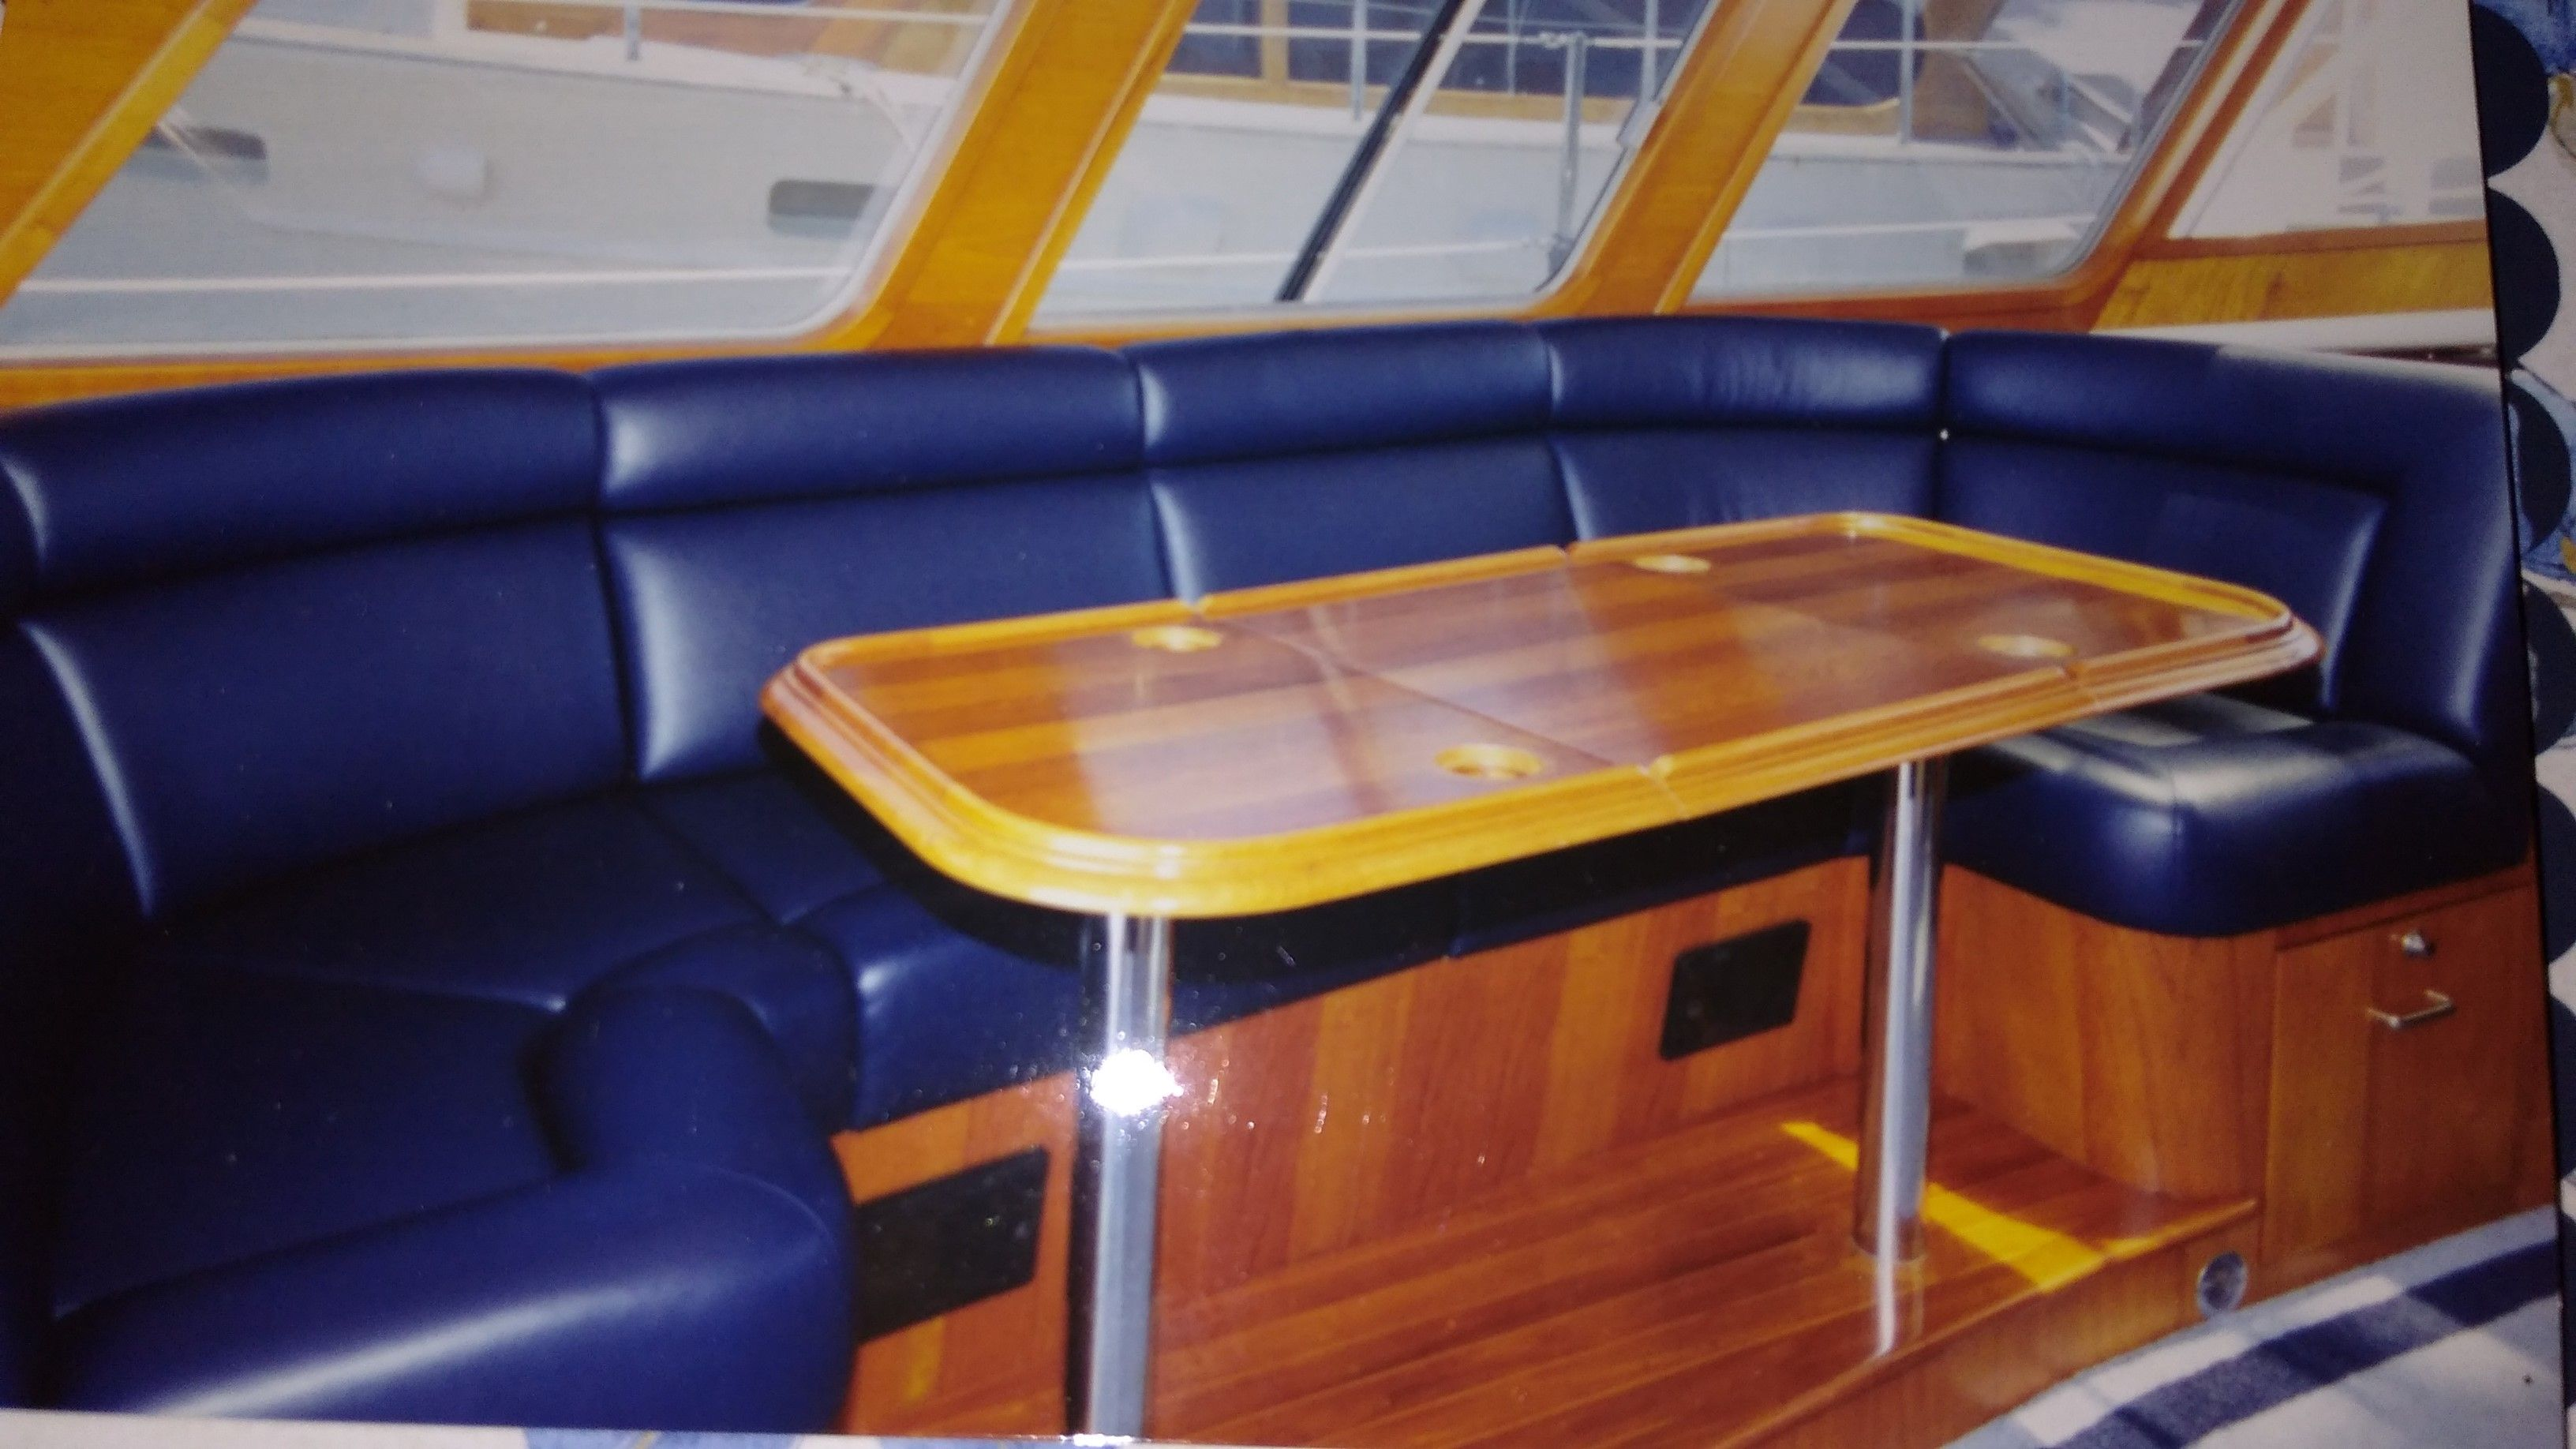 Faux Leather Was Used To Fabricate This New Settee For The Yacht